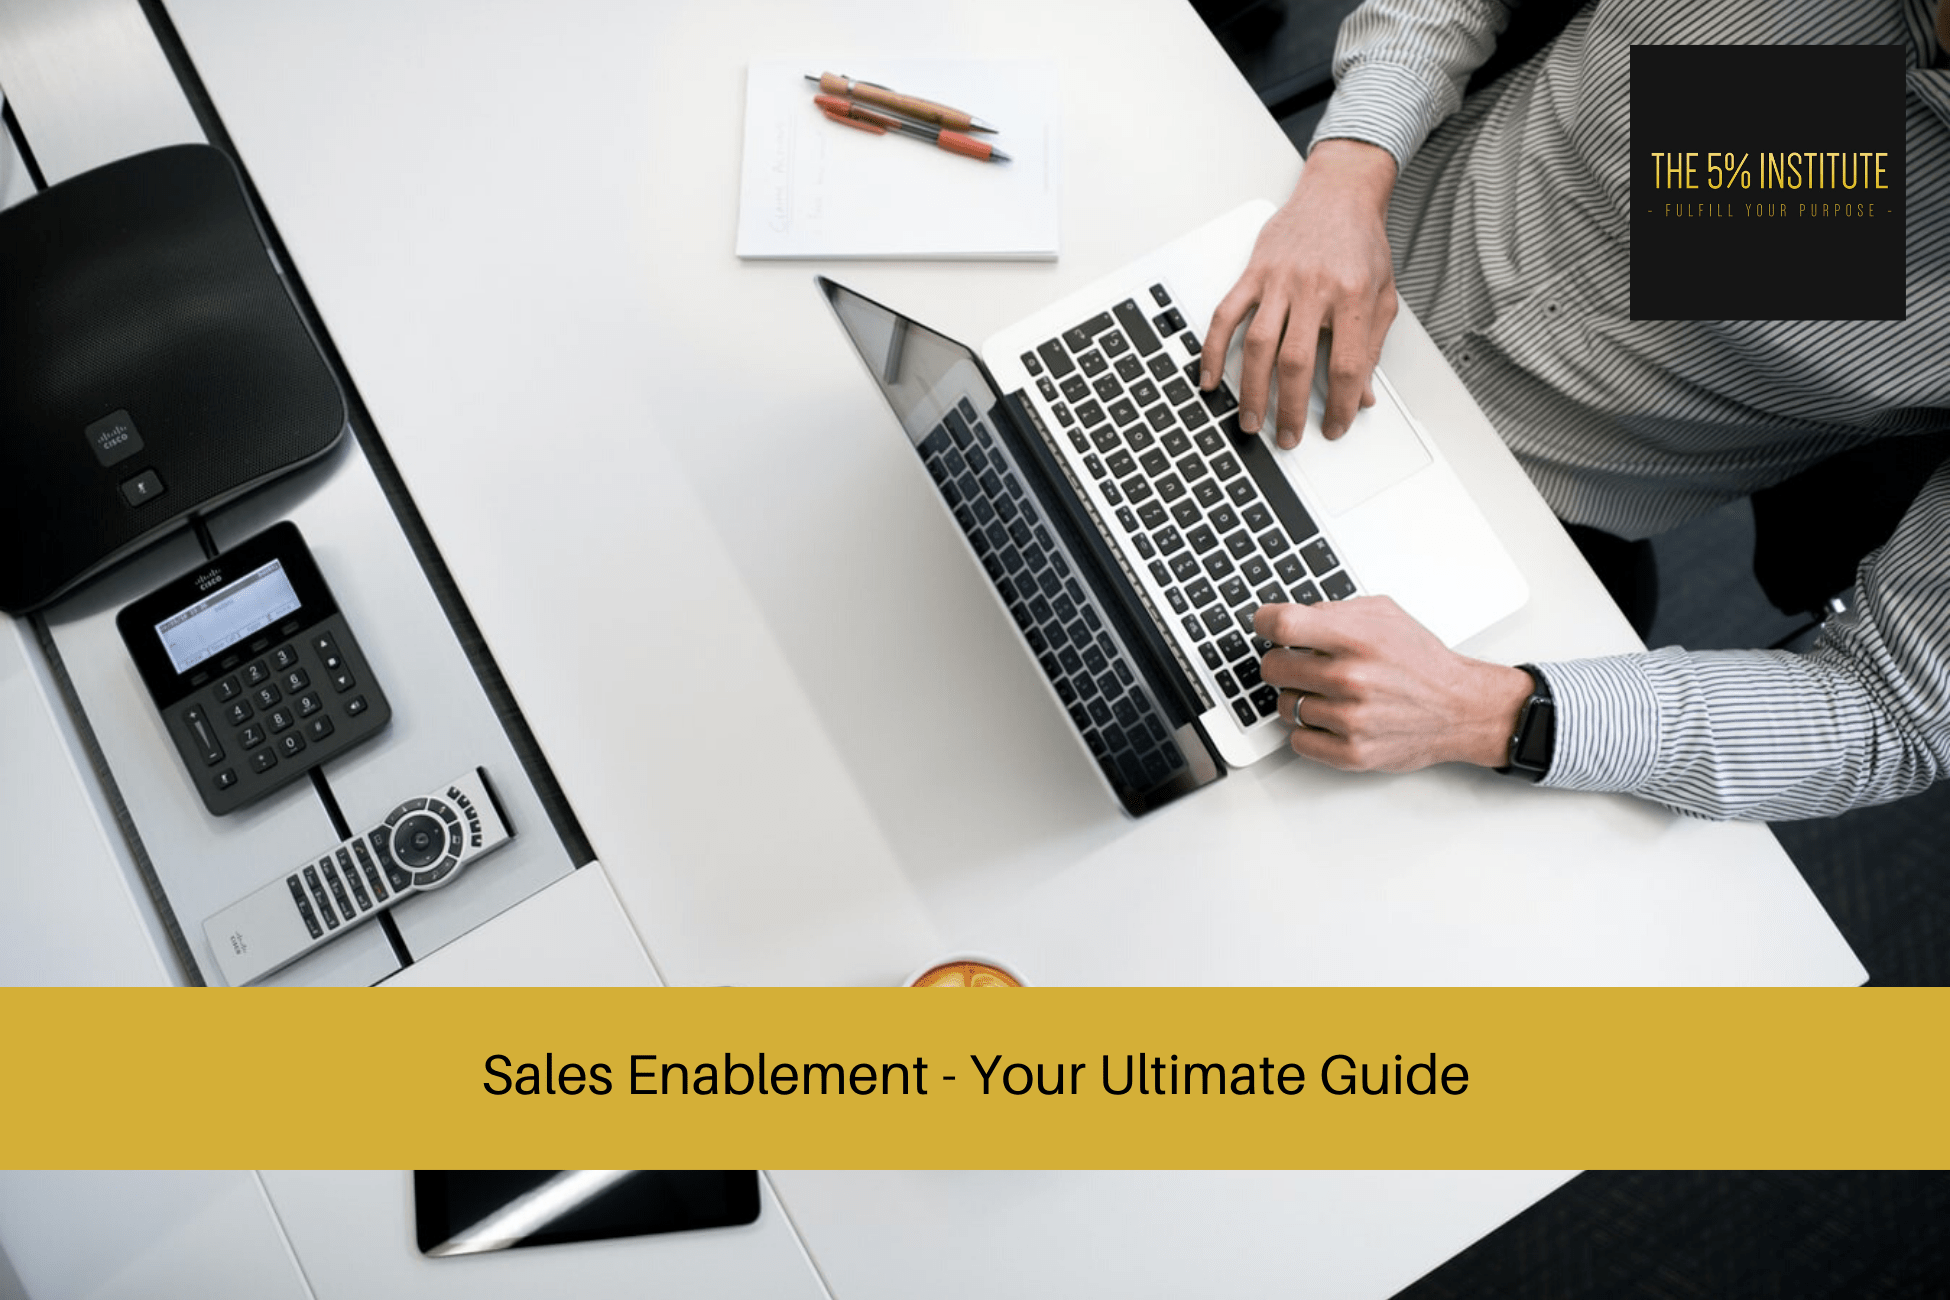 sales enablement, what is sales enablement